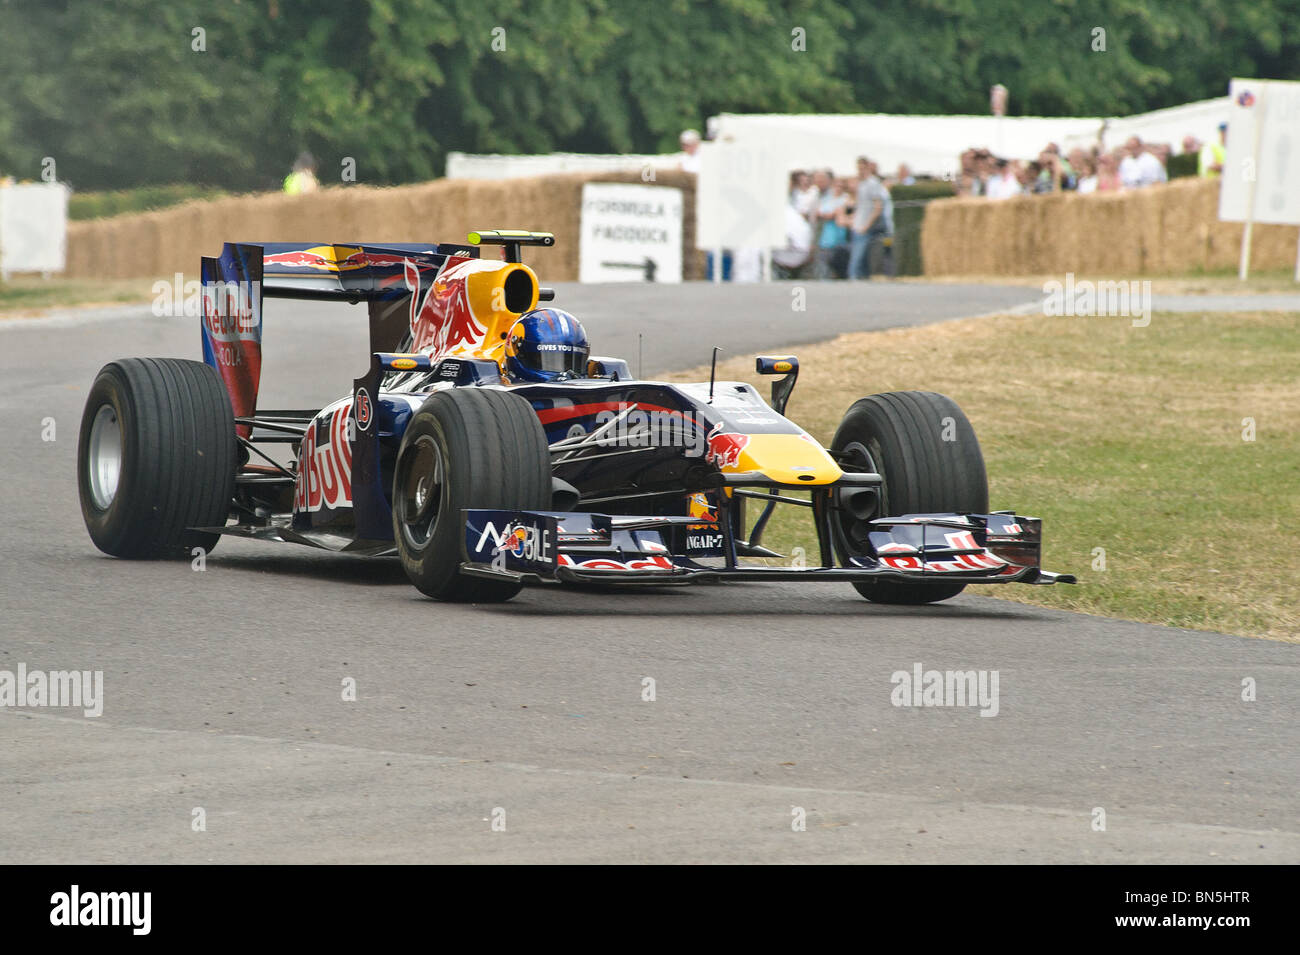 A Red Bull Formula 1 Car Climbs The Hill At Goodwood Festival Of Speed 2010